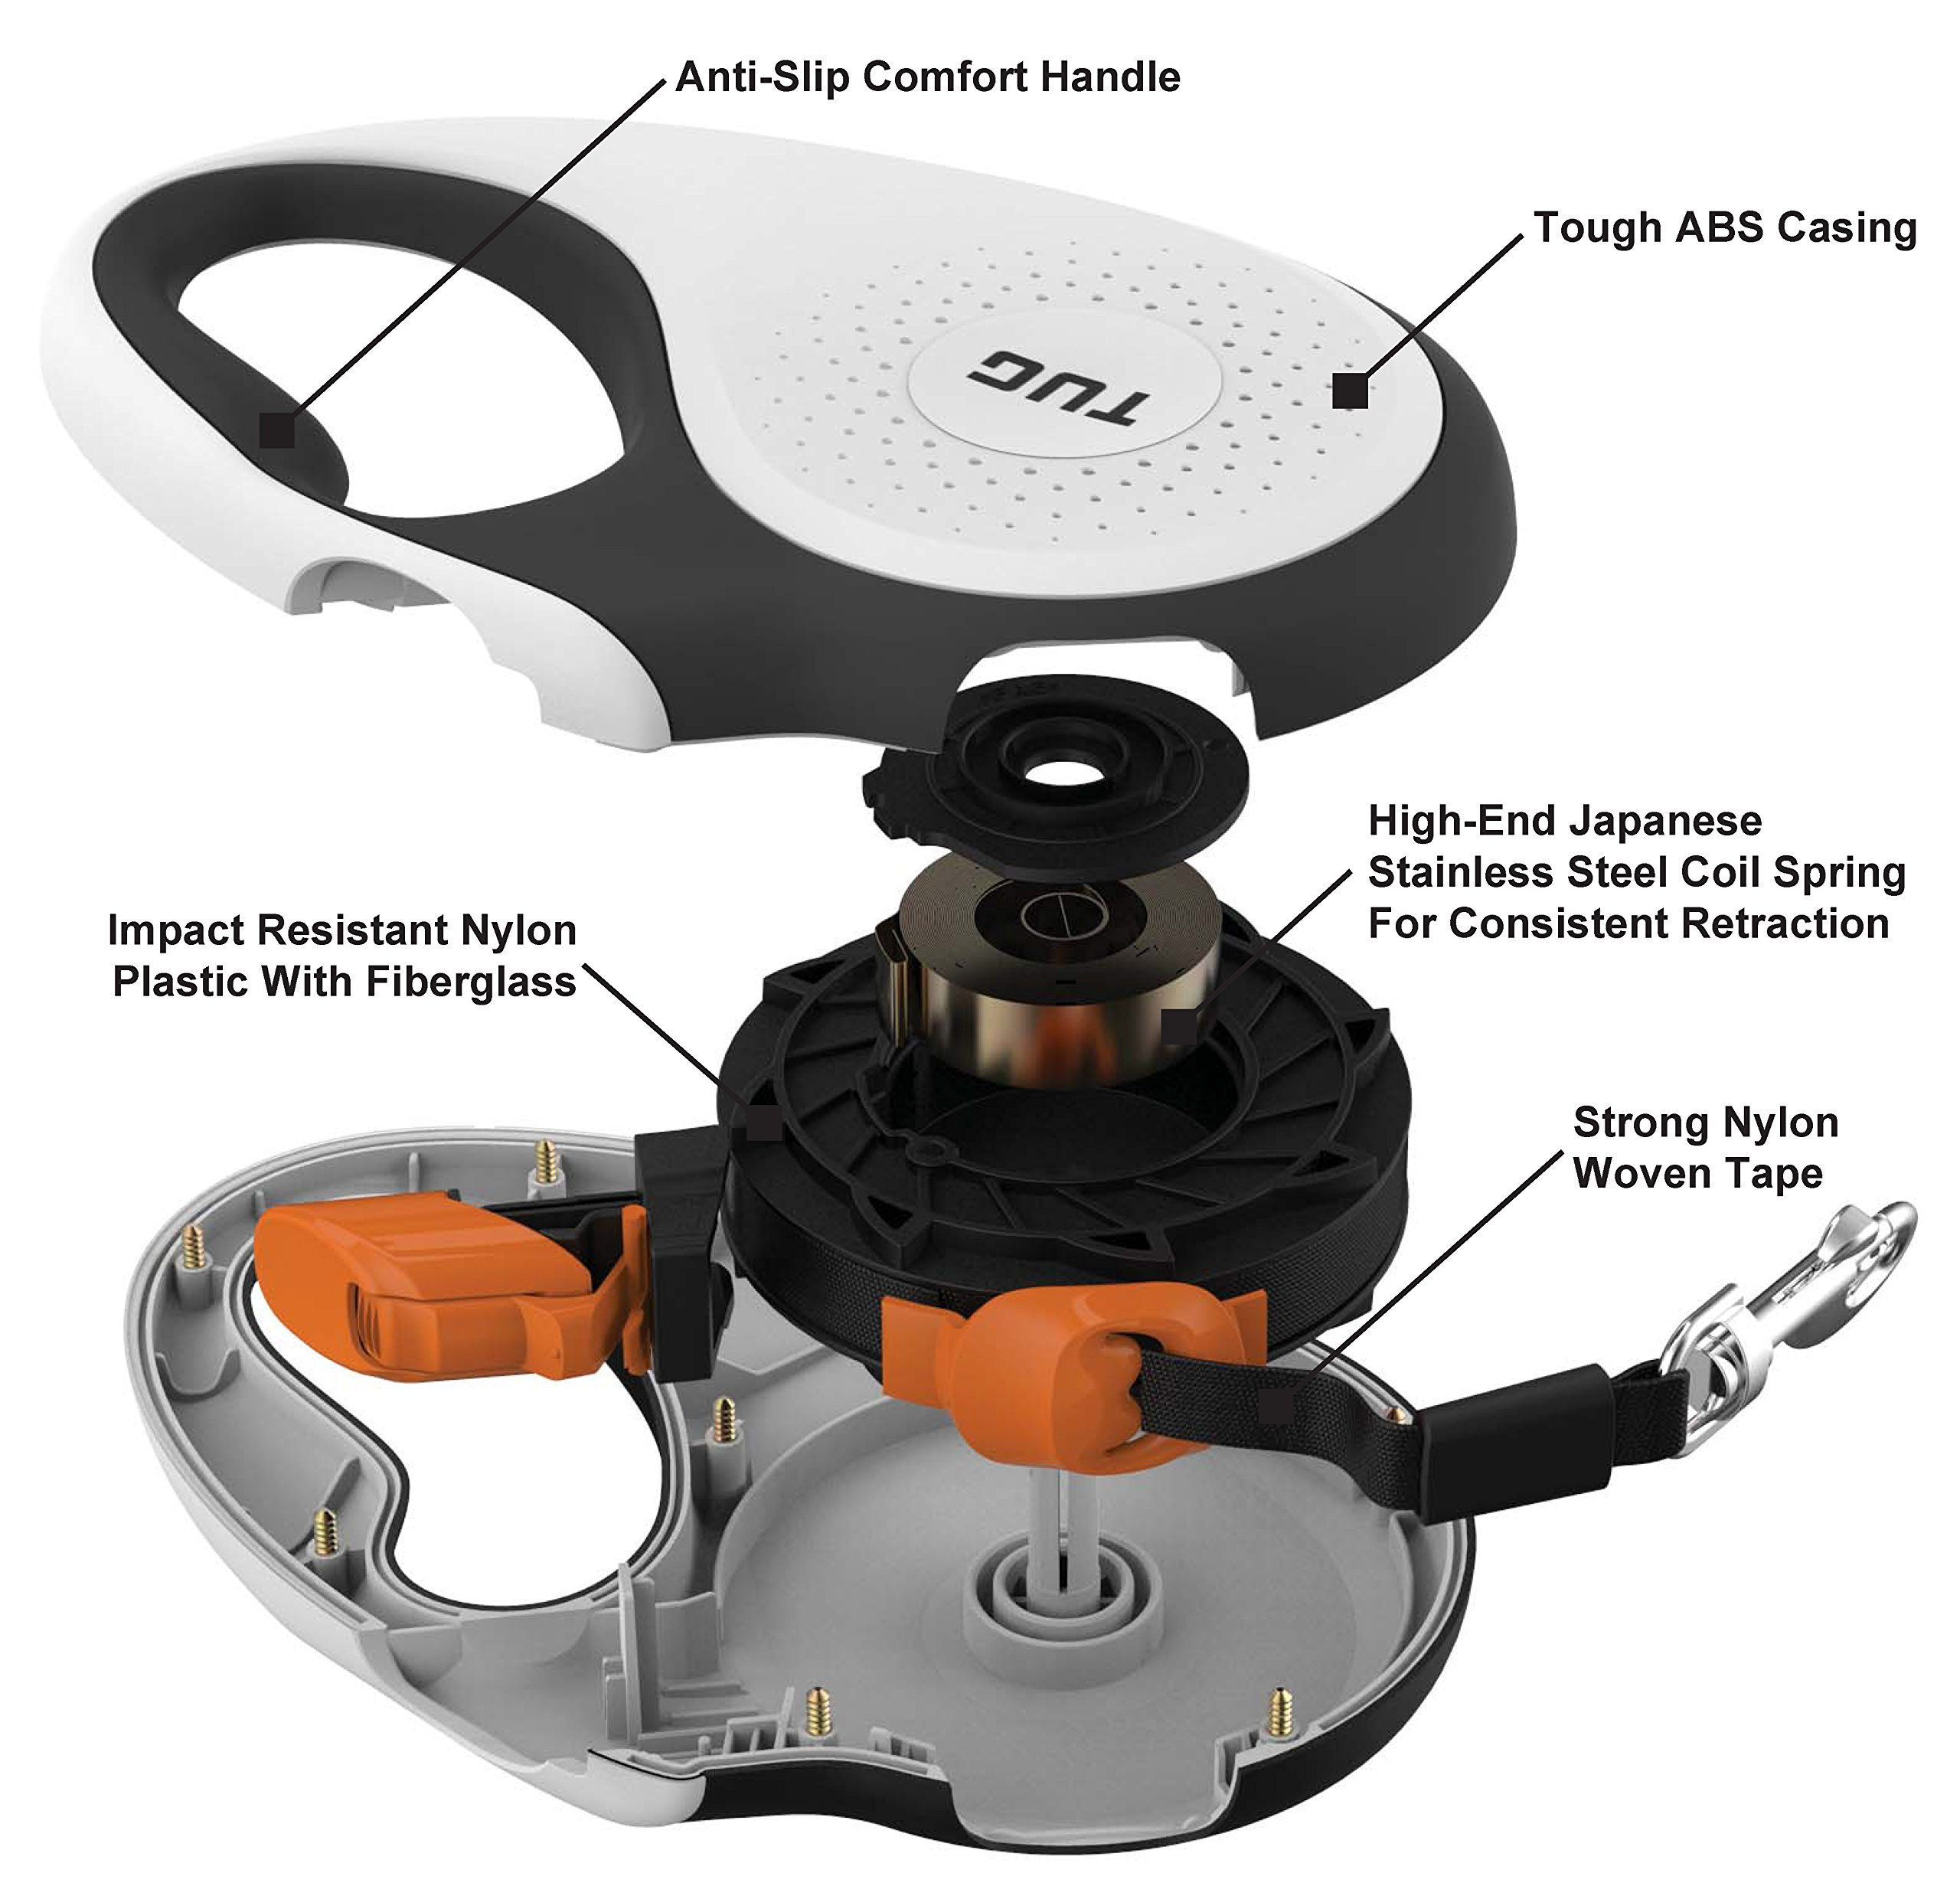 TUG Patented 360° Tangle-Free, Small Retractable Dog Leash with Anti-Slip Handle; 16 ft Strong Nylon Tape/Ribbon; One-Handed Brake, Pause, Lock (White/Orange) by TUG (Image #3)